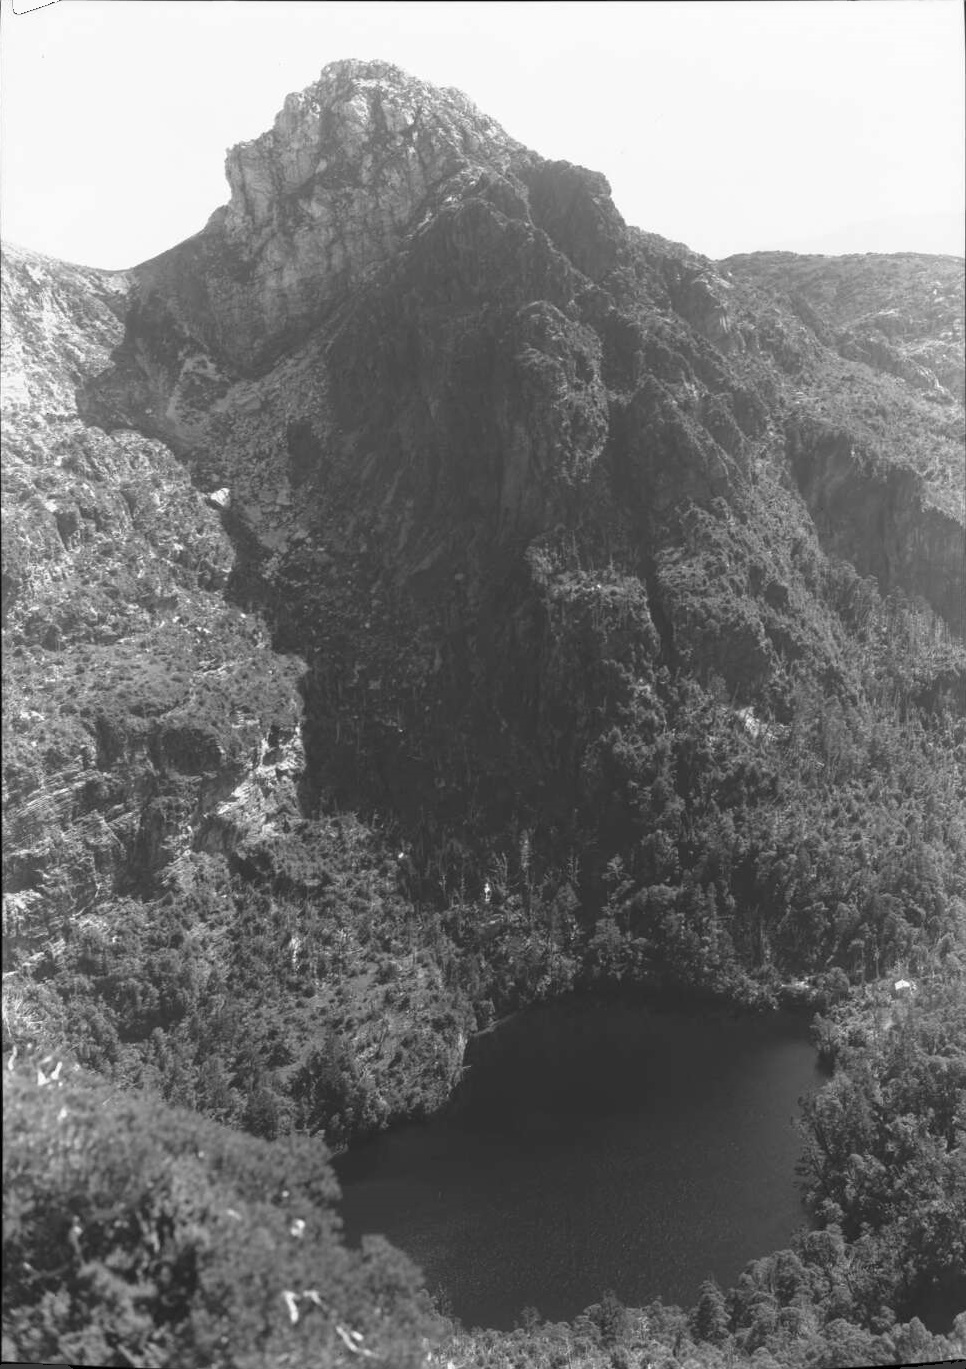 Frank Hurley's photo of Lake Tahune in 1947. Lions Head towers above the lake while the face of Frenchmans Cap is to the left of this scene. Source: National Library of Australia.